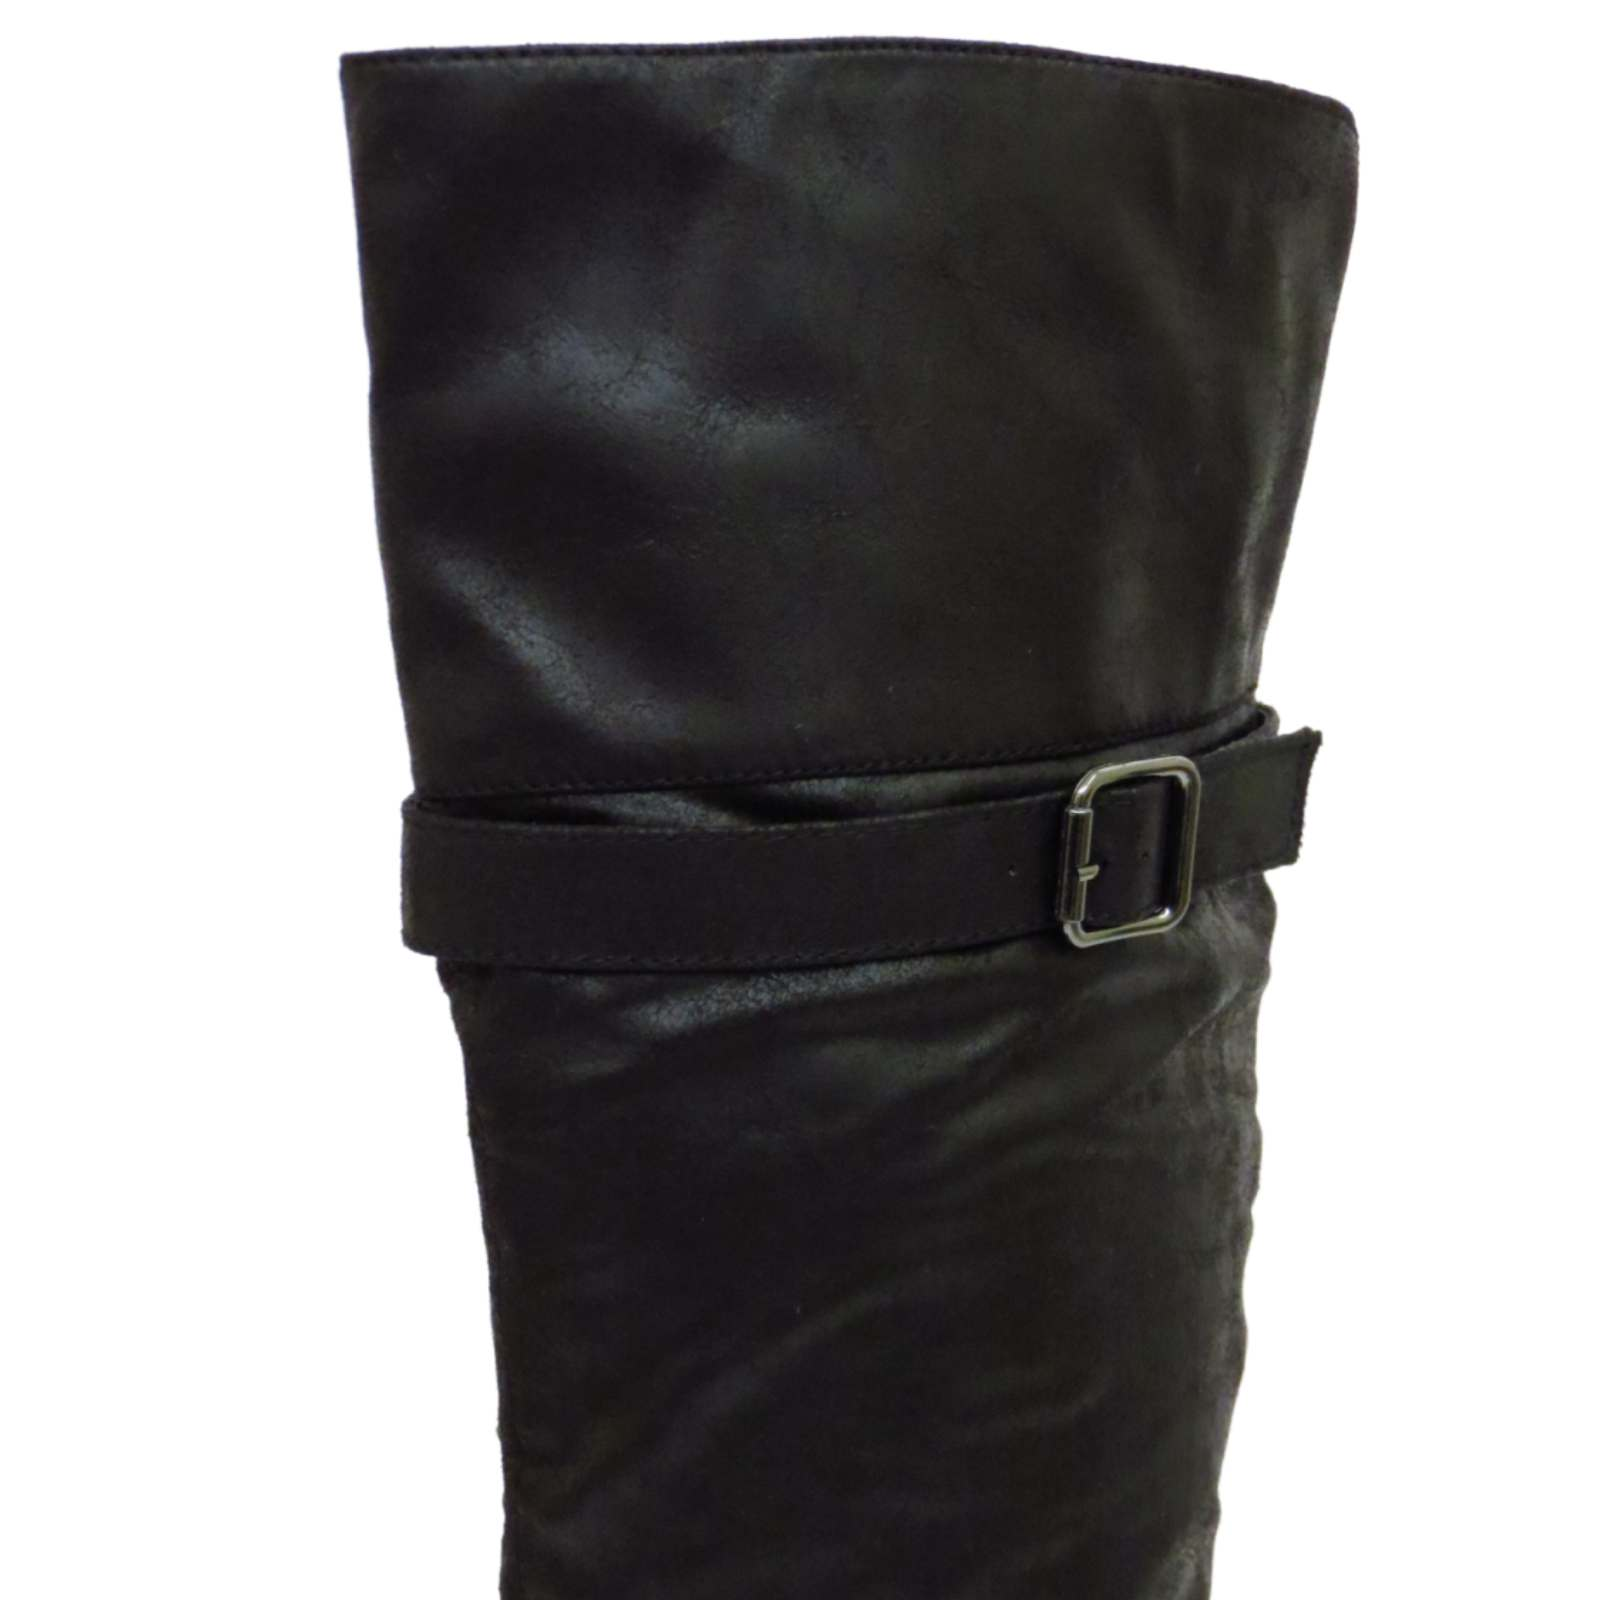 lidarwindtechnolog.ga: black wedge heel boots. These wedge boots are made with faux suede man-made materials. Premier Standard Fashion Casual Outdoor Low Wedge Heel Booties Shoes. DREAM PAIRS Toddler/Little Kid/Big Kid Girl's Low Wedge Heel Booties Shoes. by DREAM PAIRS. $ $ .